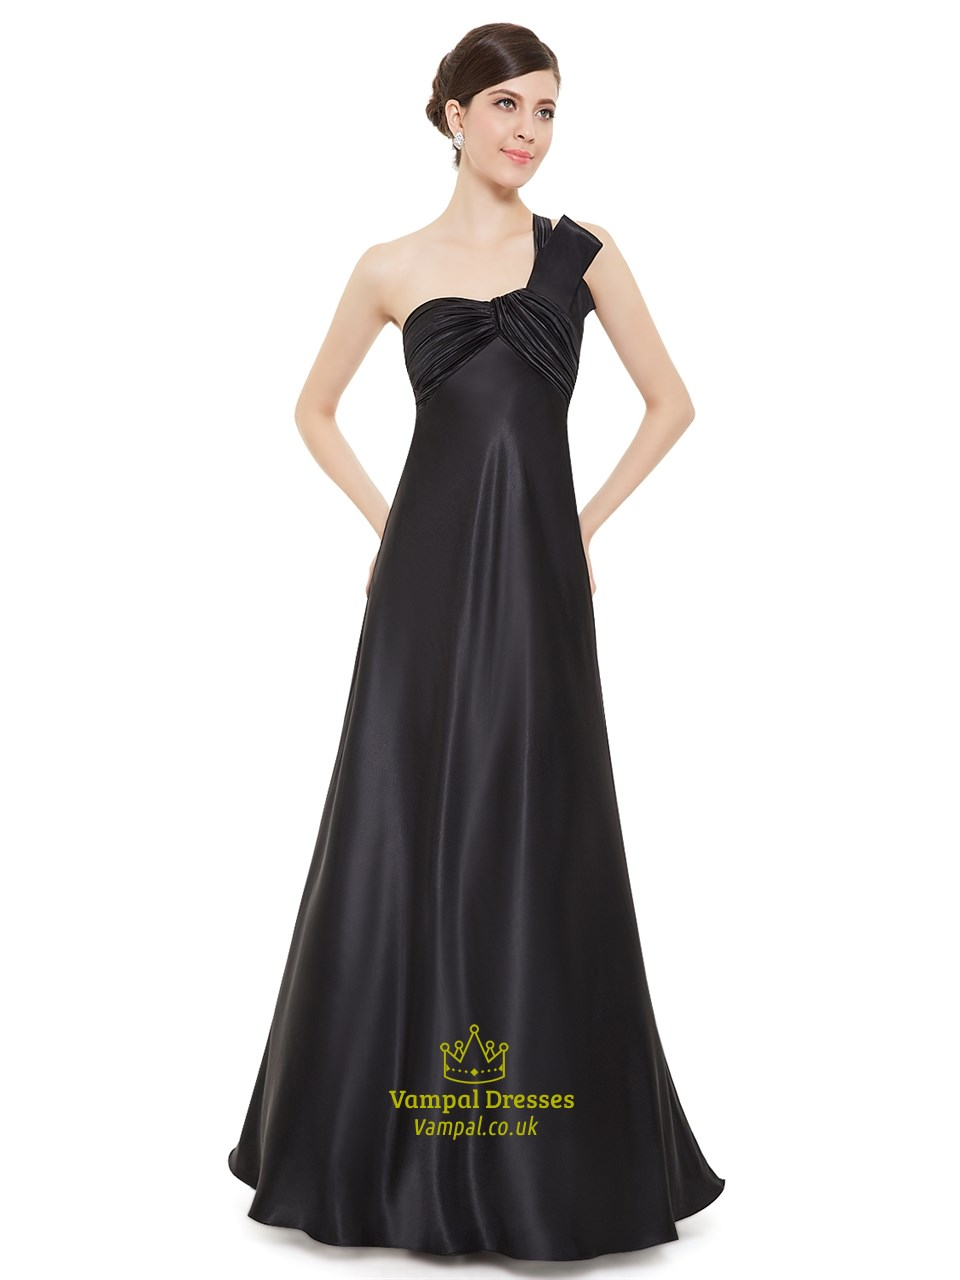 e41beda43df9 Black One Shoulder Empire Waist Bridesmaid Dresses With Ruching SKU -NW1426